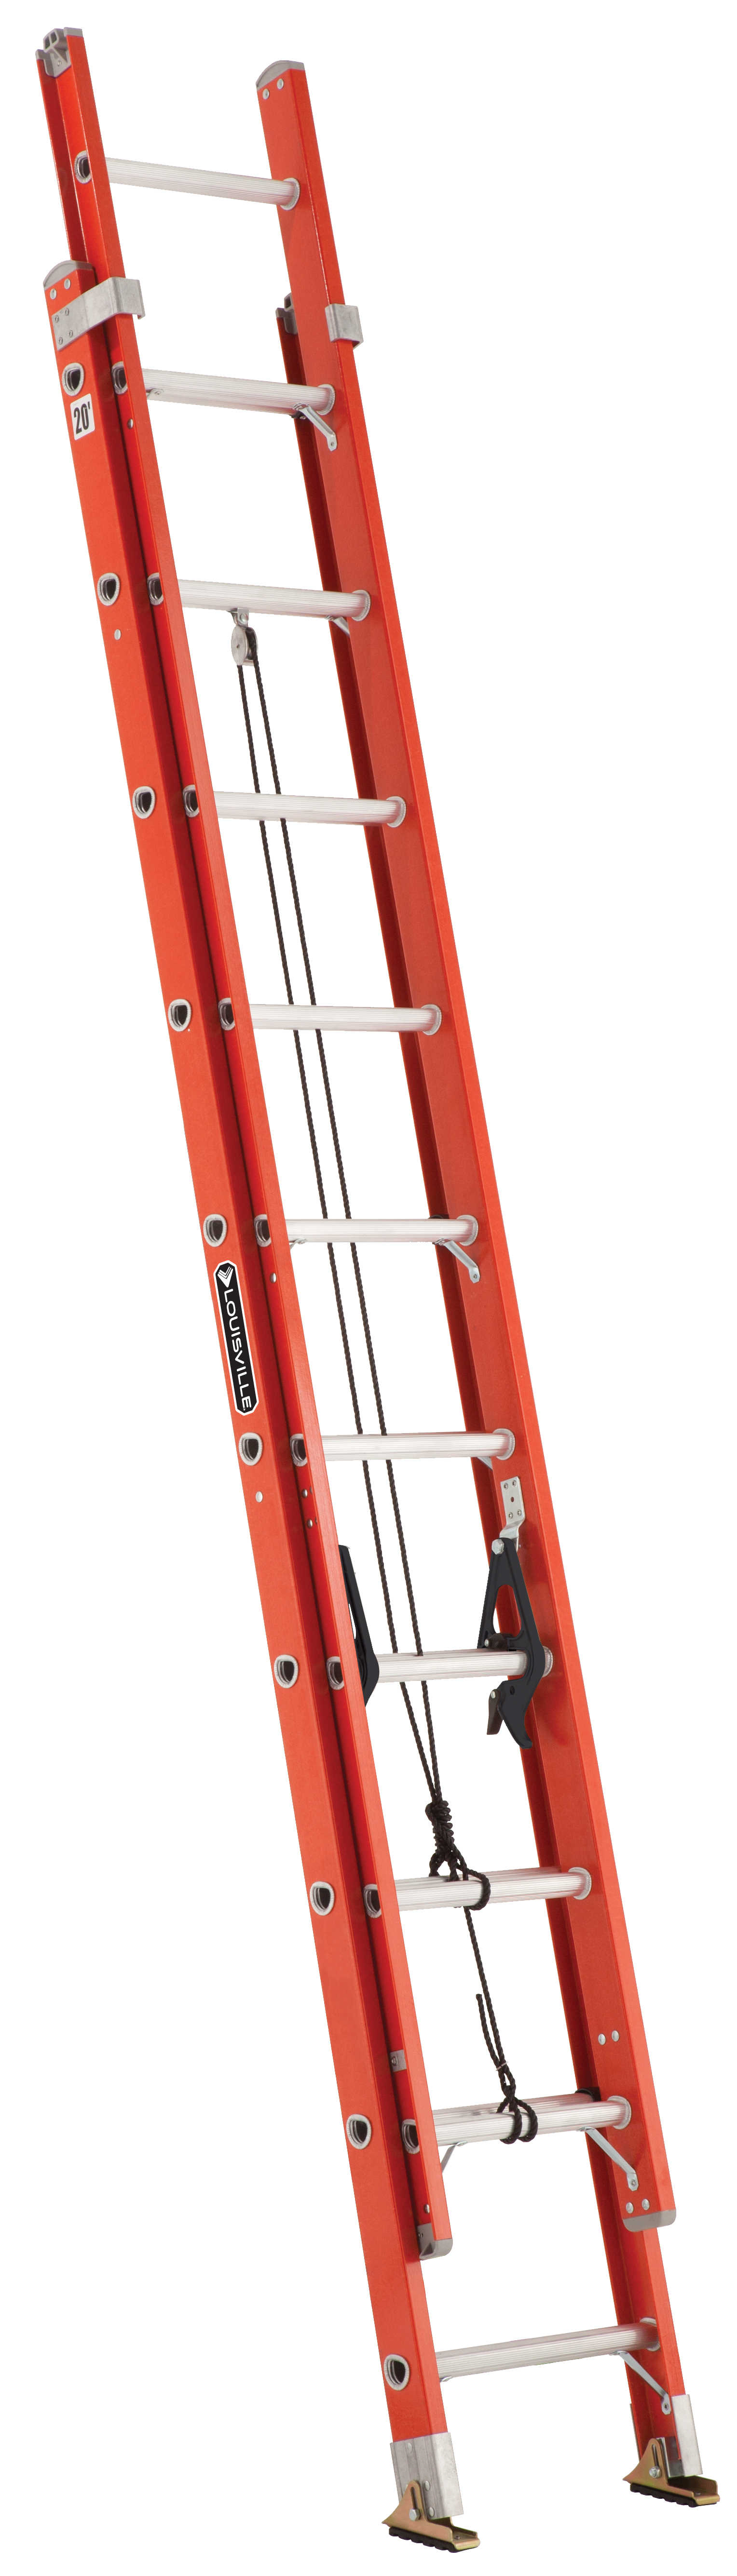 Louisville Ladder FE3220 20 ft. Fiberglass Extension Ladders, Type IA, 300 lbs Load Capacity